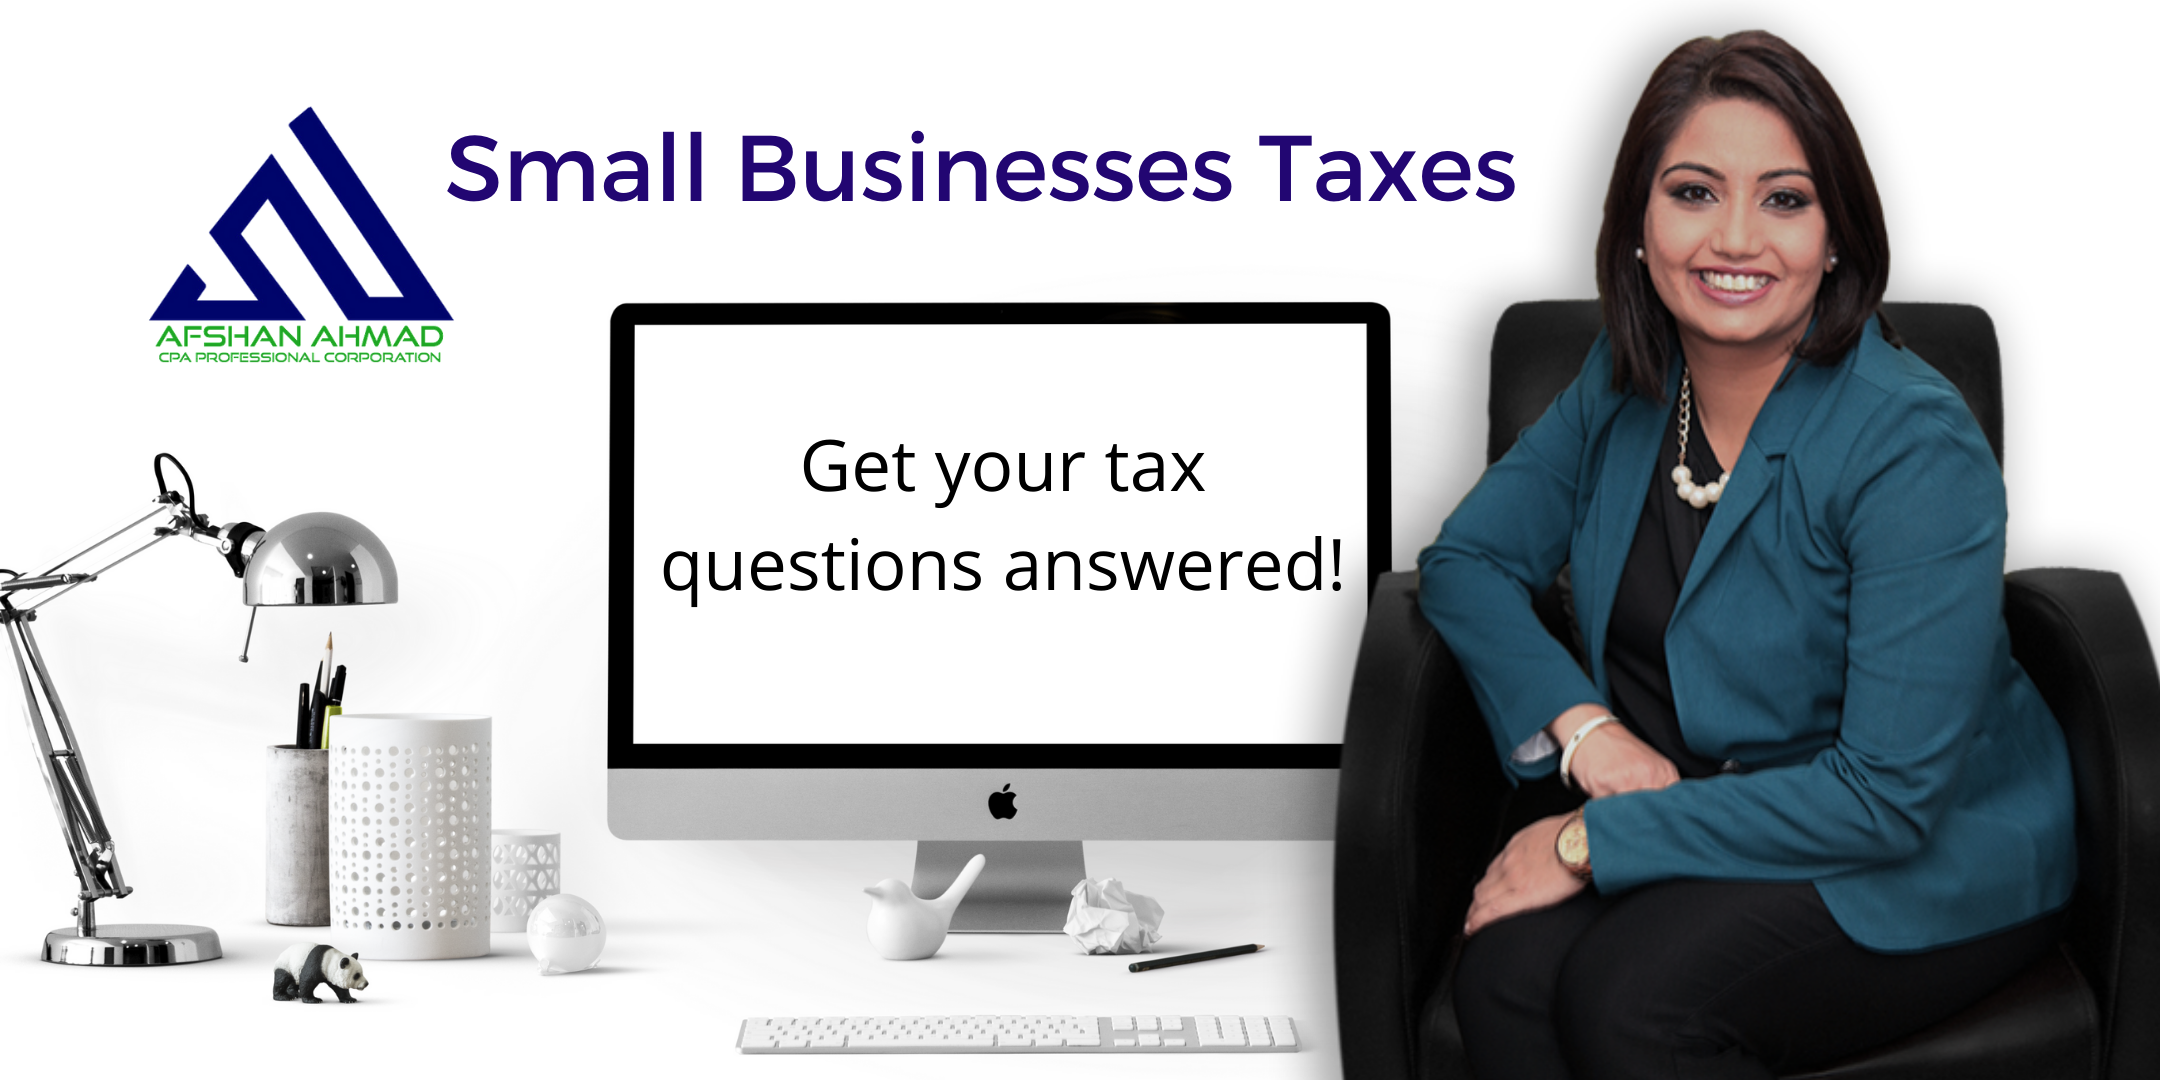 Small Business Taxes - Everything you need to know!